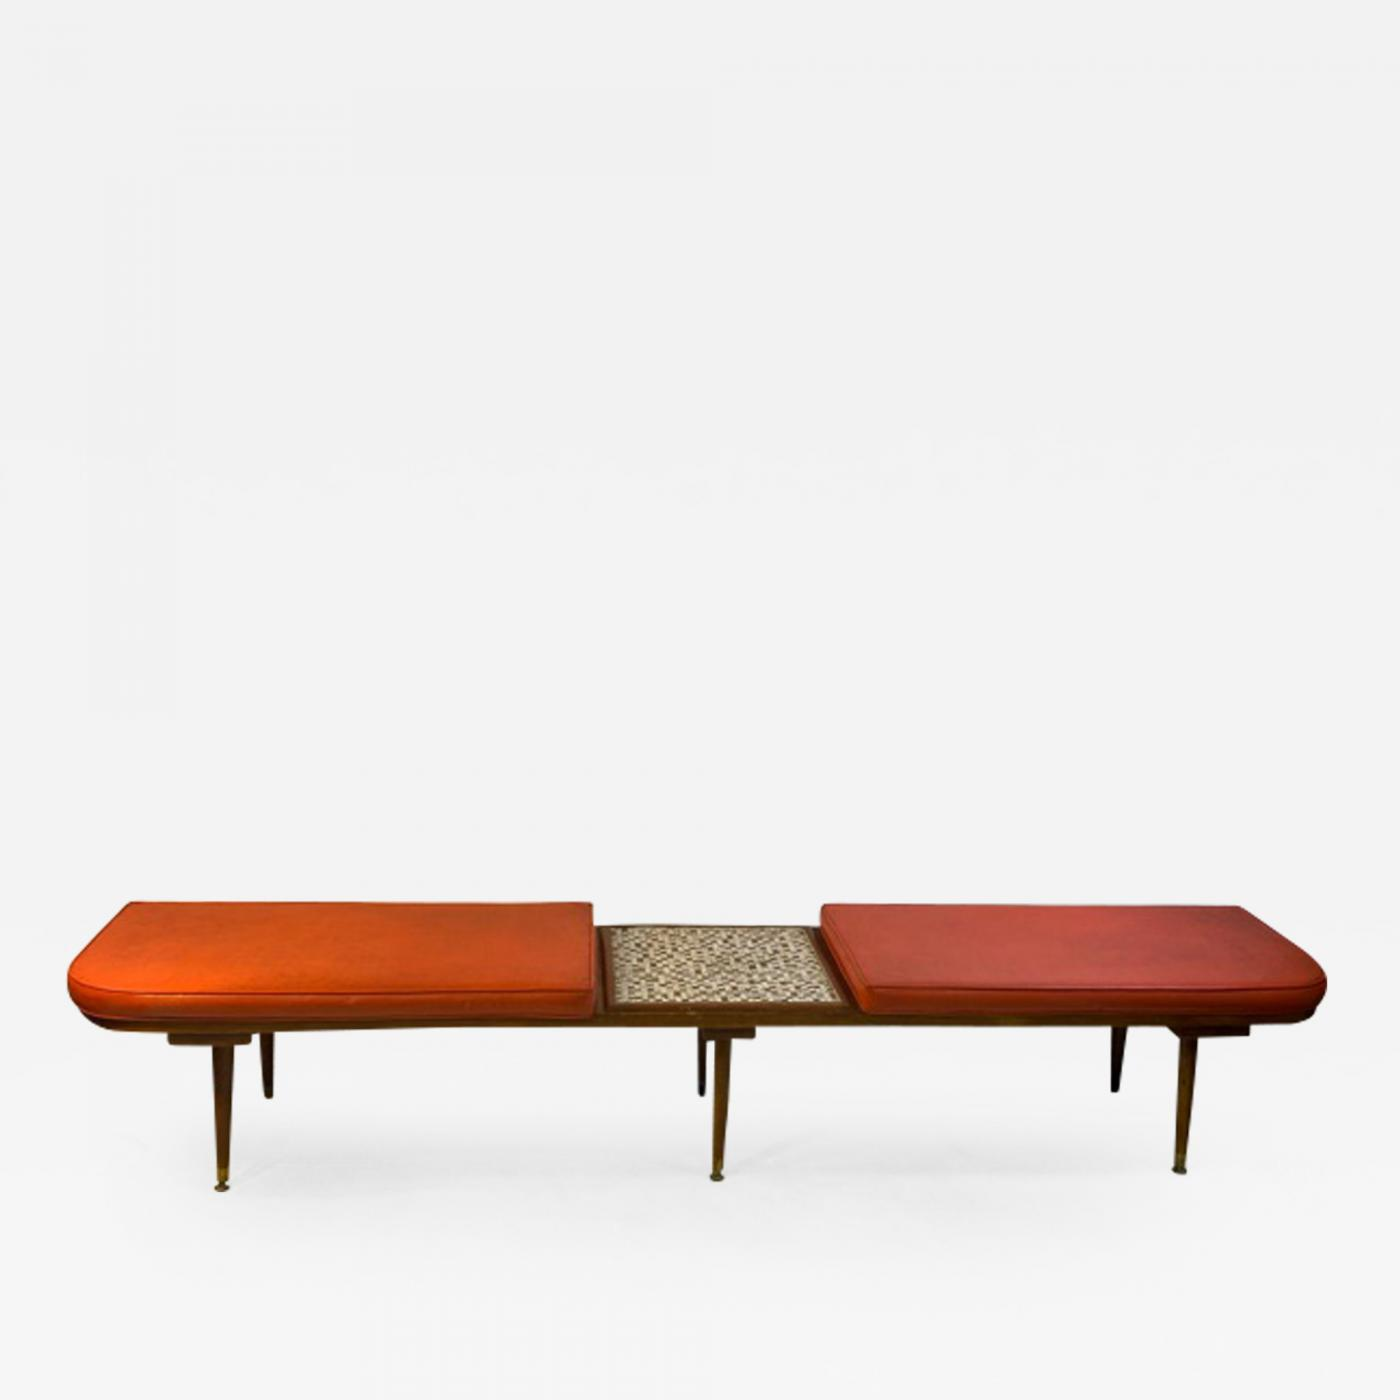 hohenberg original mid century modern bench with attached tile coffee table by hohenberg